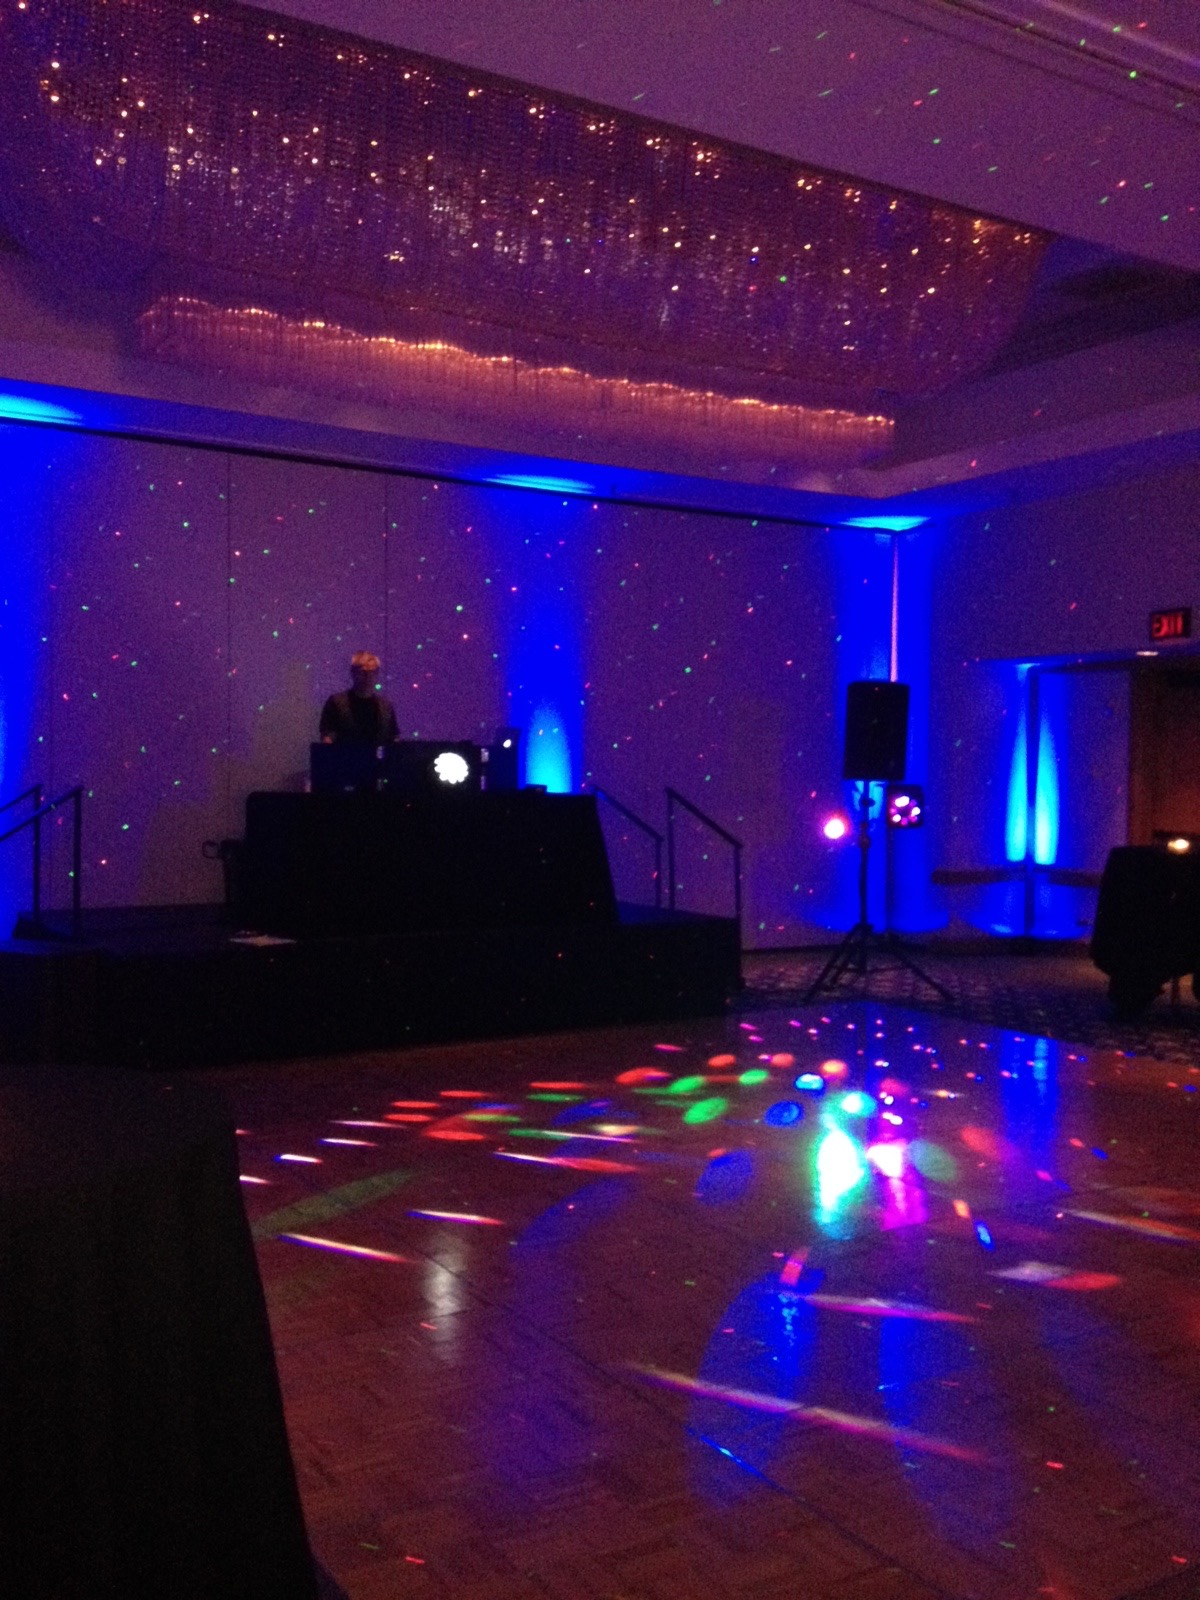 Sound Activated Colored Motion Dancefloor Lighting Kustom